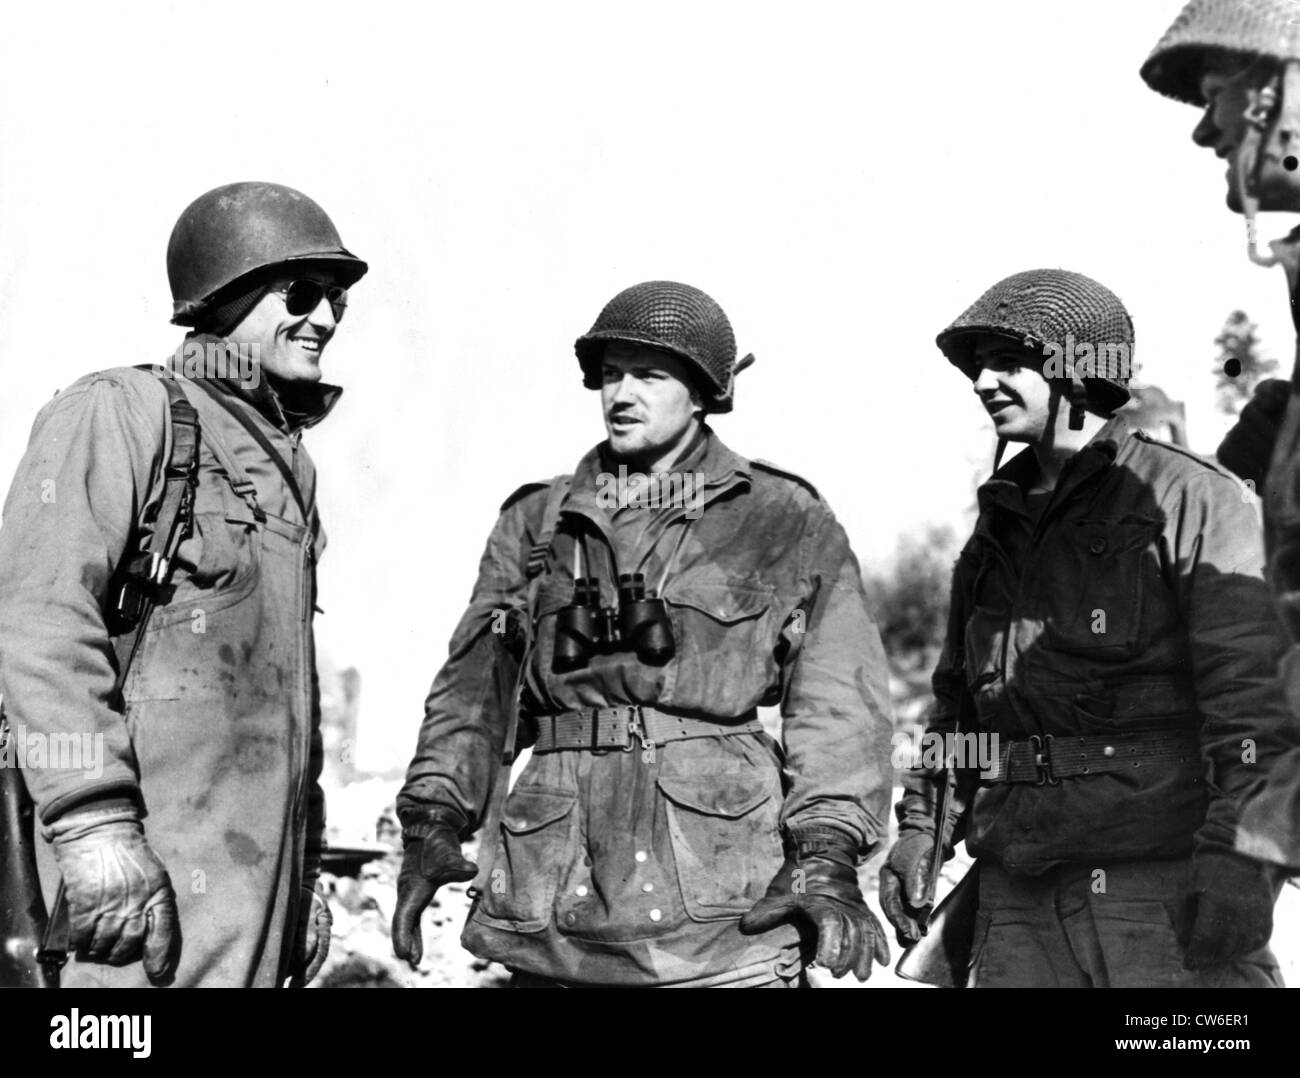 Units of 1st and 3rd U.S. Armies meet in Laroche January 14, 1945 - Stock Image